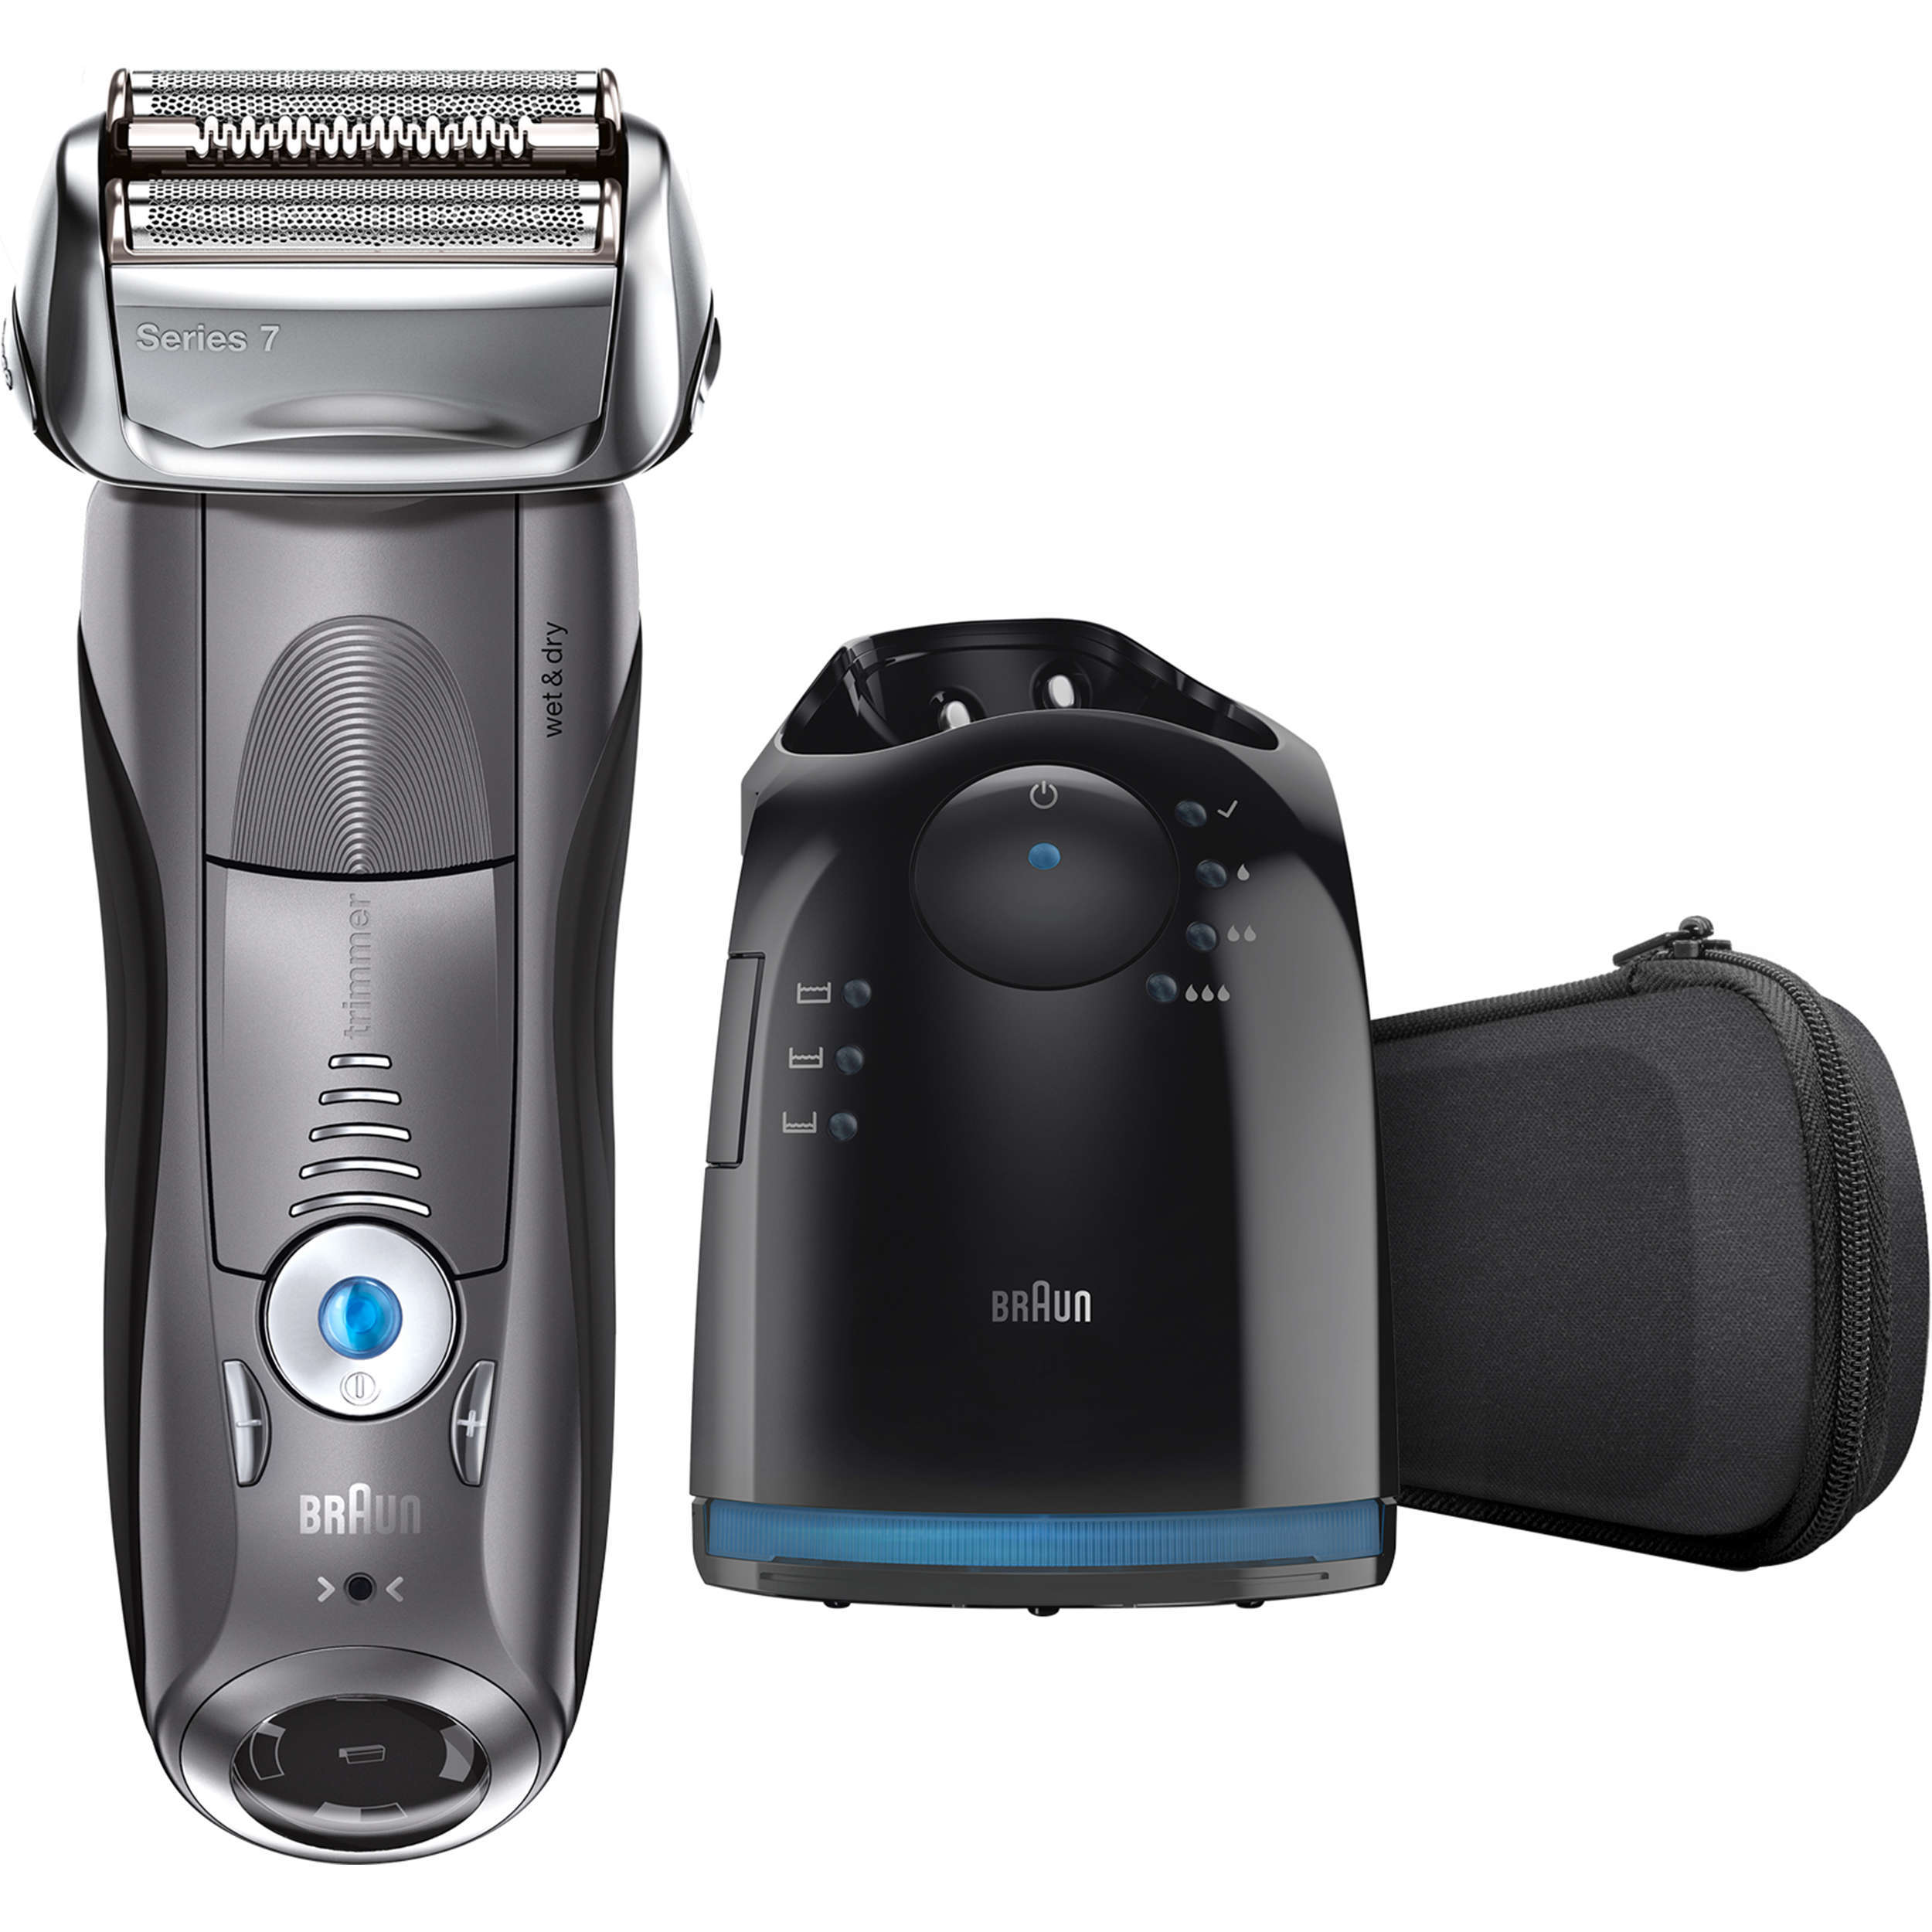 Braun Series 7 790cc ($35 Rebate Available) Men's Electric Foil Shaver, Rechargeable and Cordless Razor with Clean & Charge Station